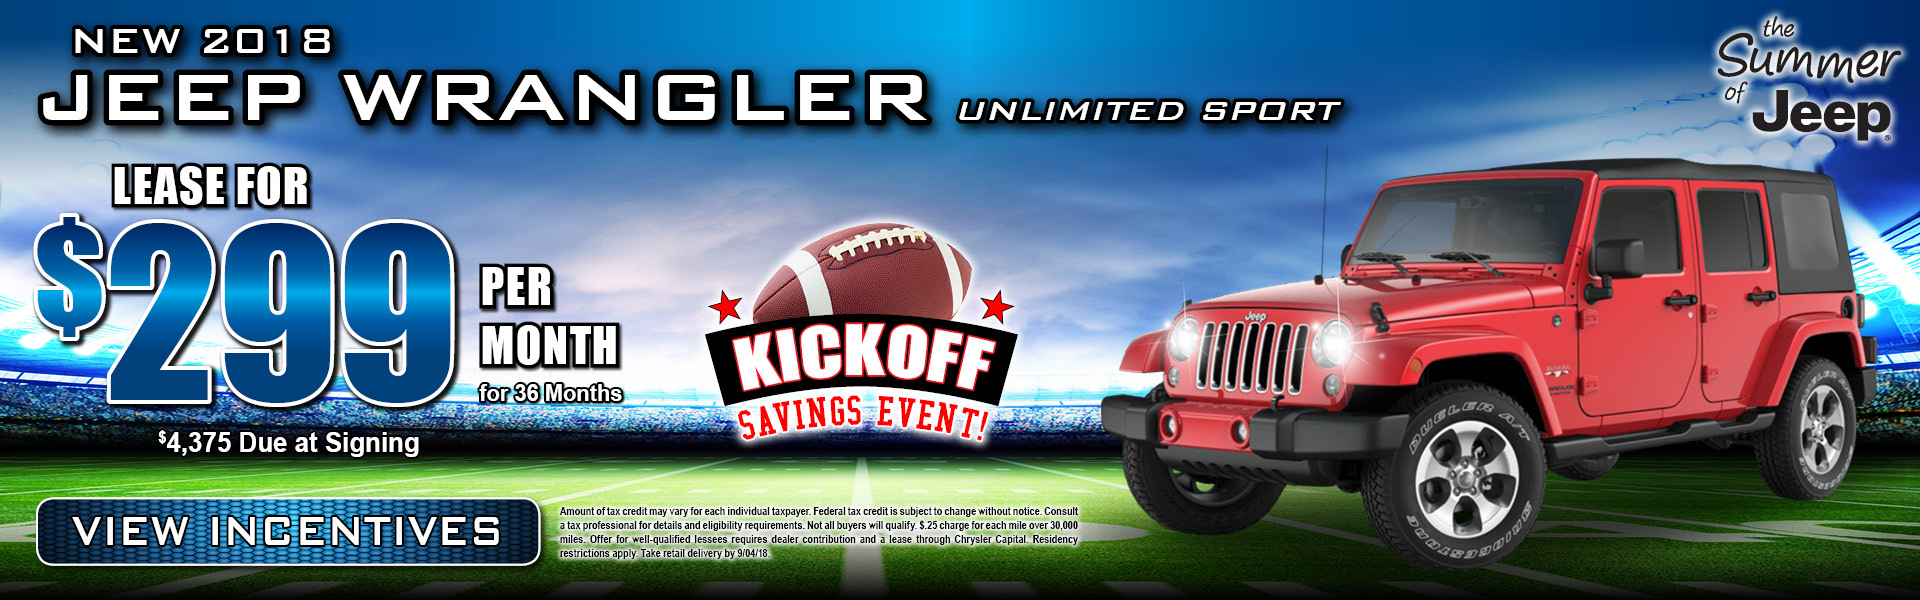 Jeep Wrangler Unlimited $299 Lease